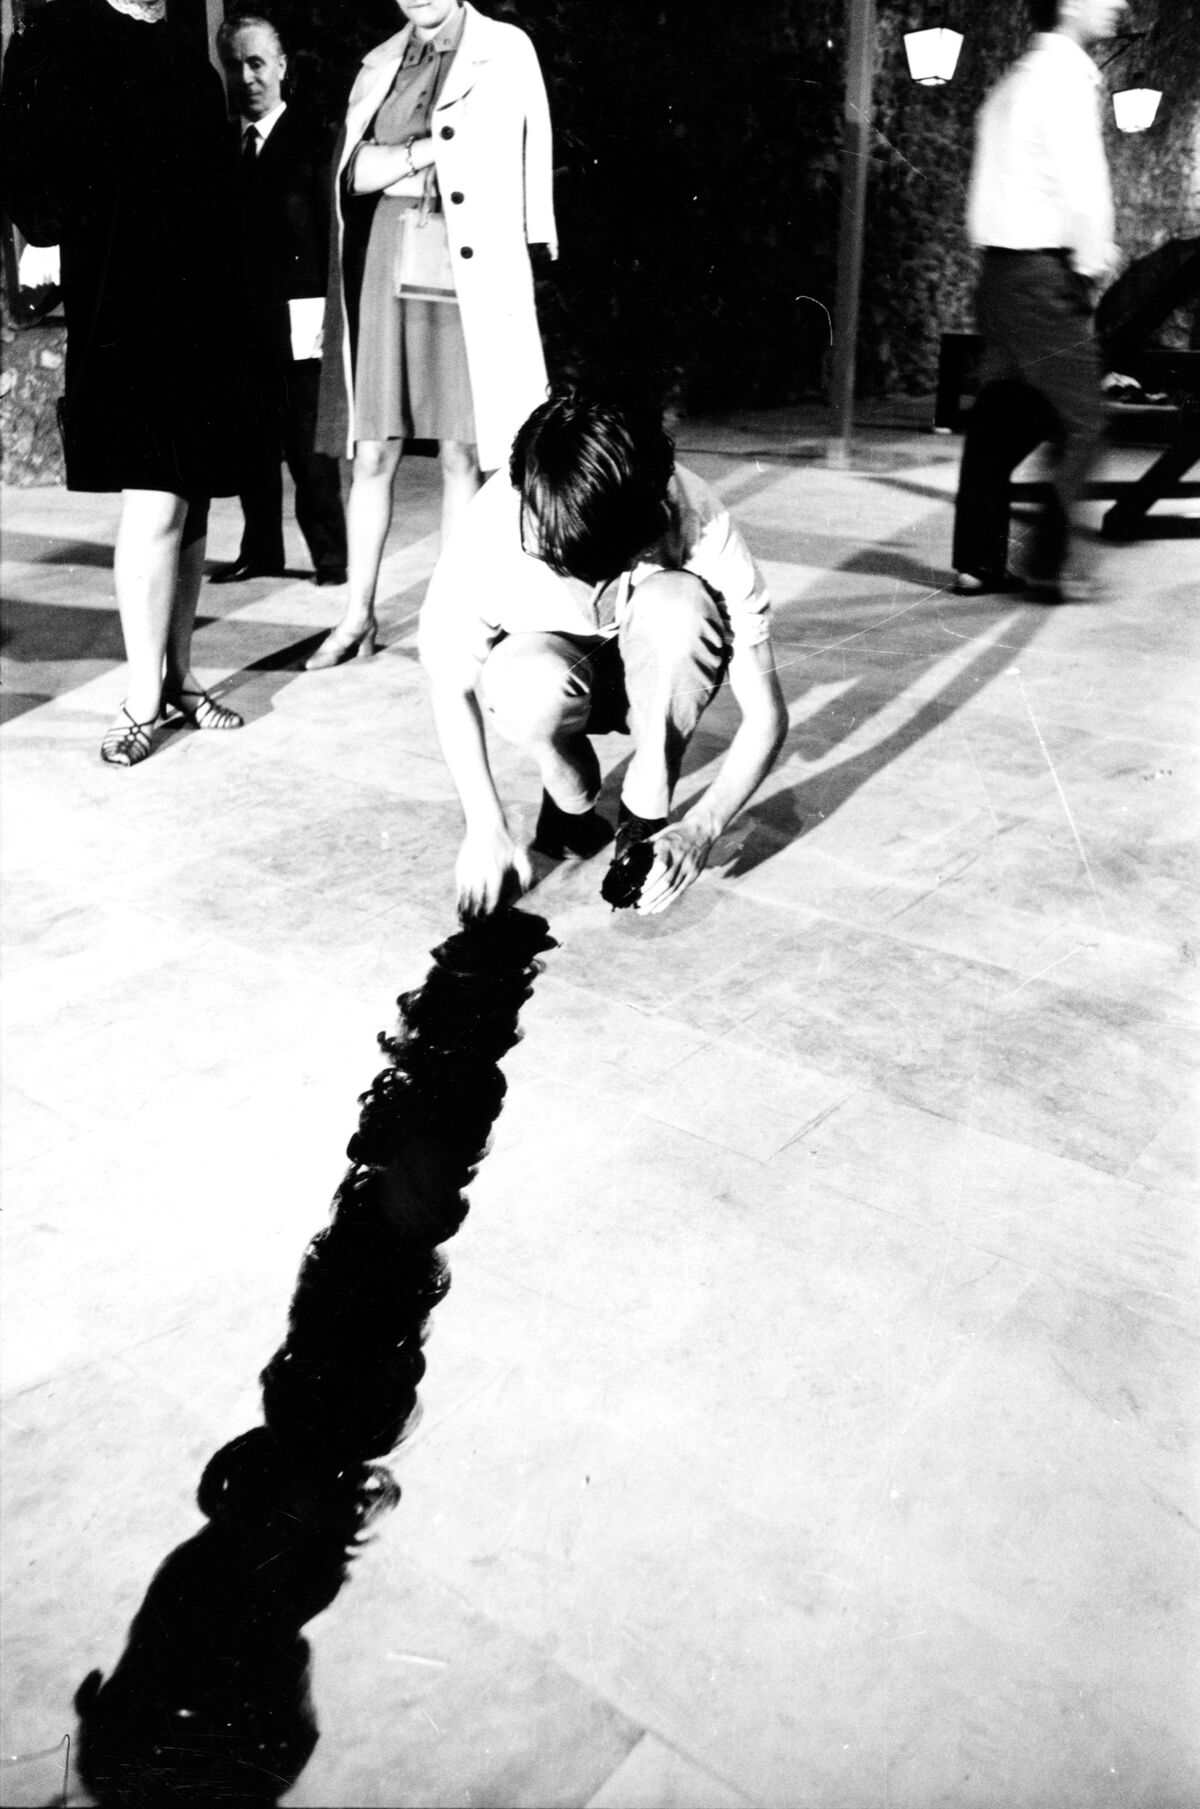 Ger Van Elk painting a line on the floor with shoe polish at Arte Povera, 1968. Photo by Bruno Manconi. Courtesy of Archivo Lia Rumma.